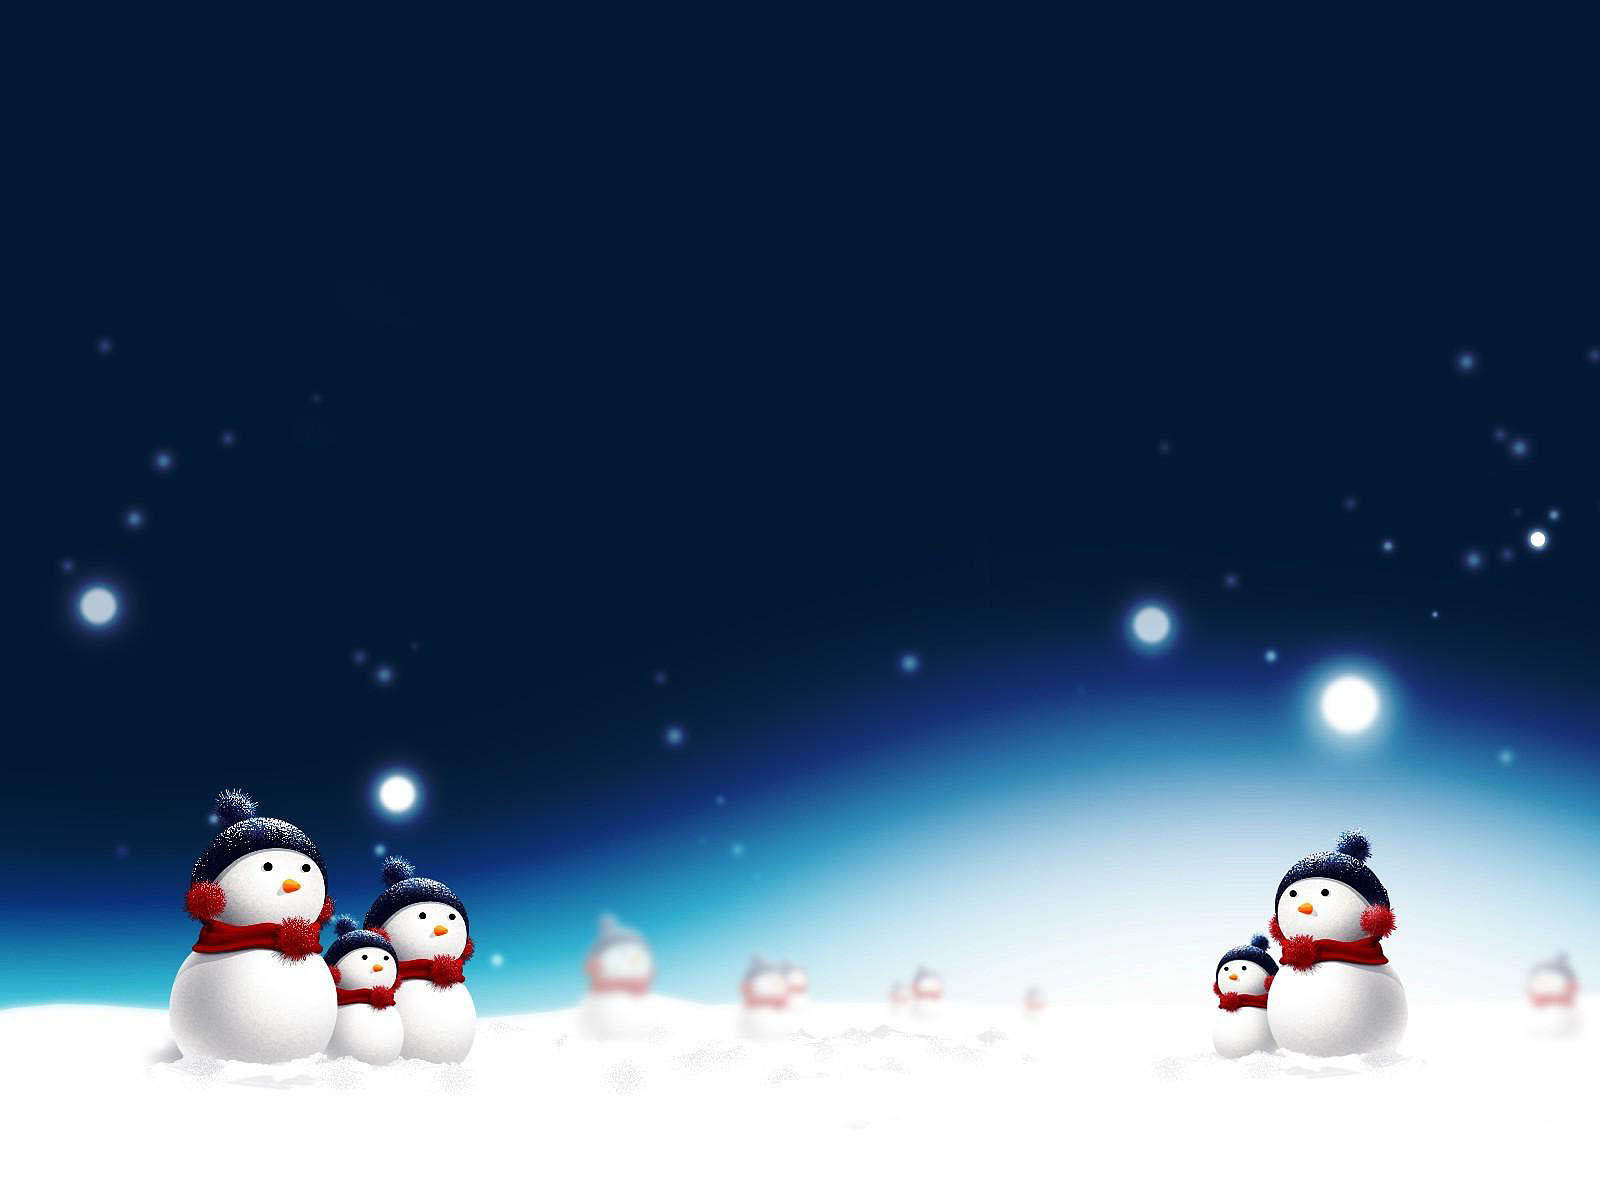 Snowman+Desktop+Wallpapers+and+Backgrounds+3